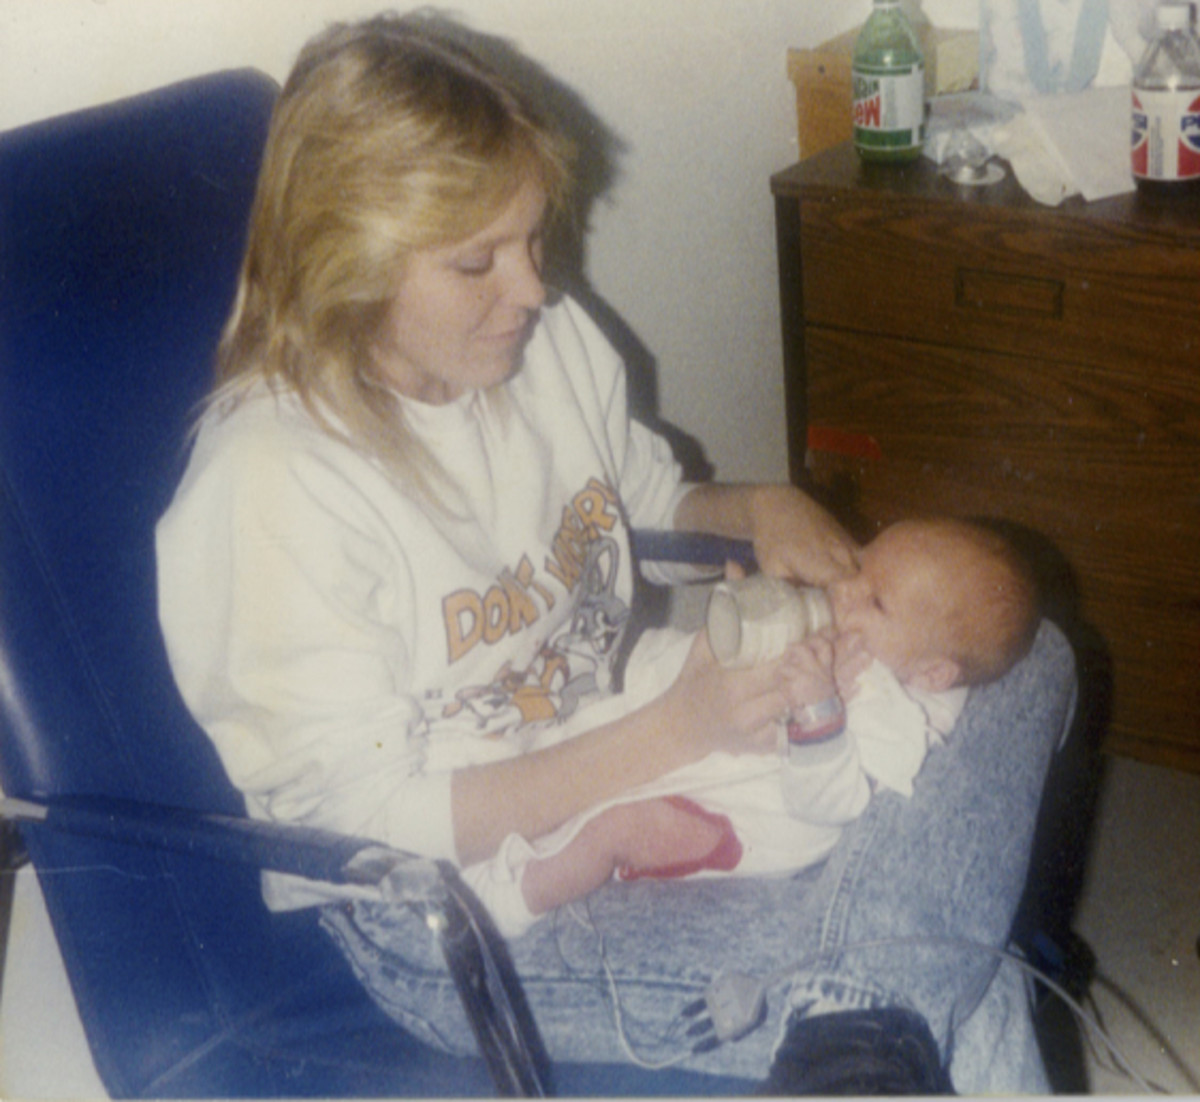 Debbie at 34 years old, shortly after the birth of her first grandson in 1999.